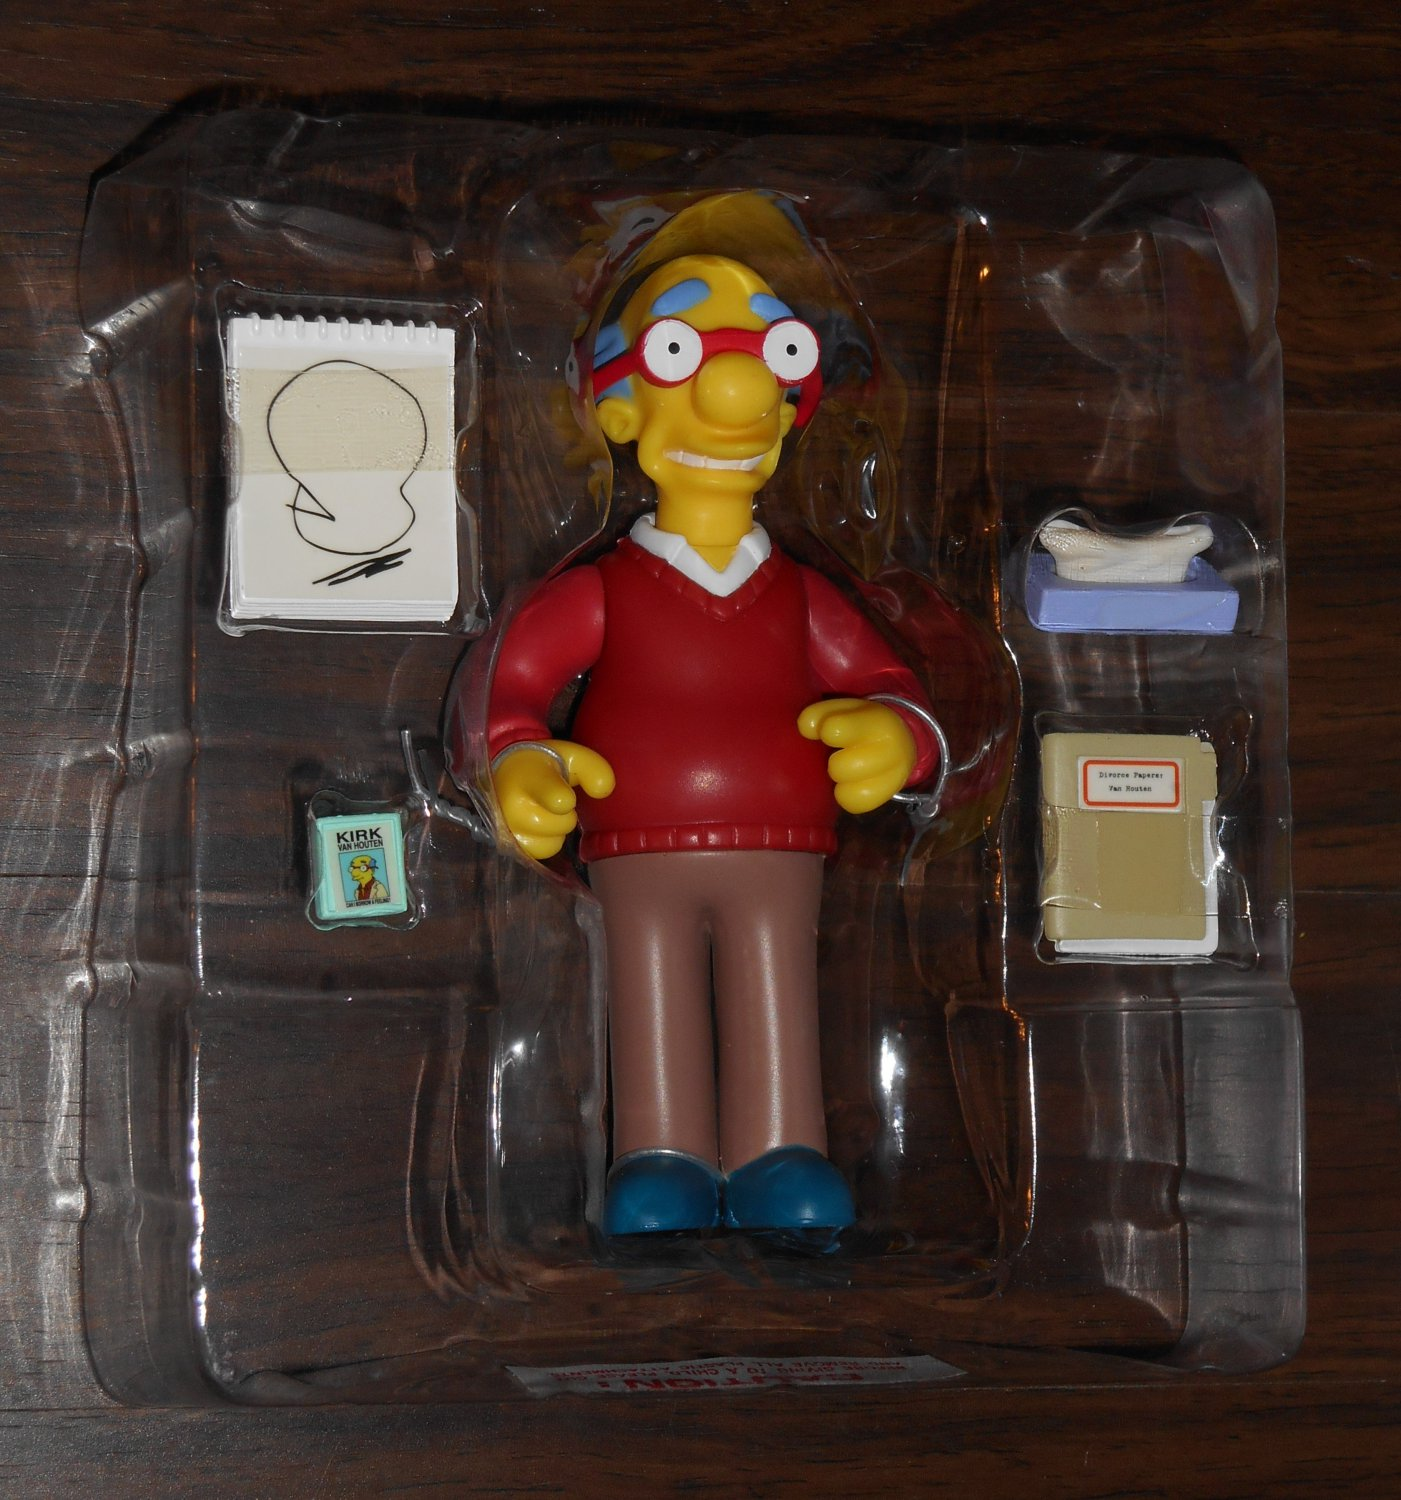 Kirk Van Houten Series 11 WOS Interactive Figure The Simpsons Fox TV Show Playmates Toys